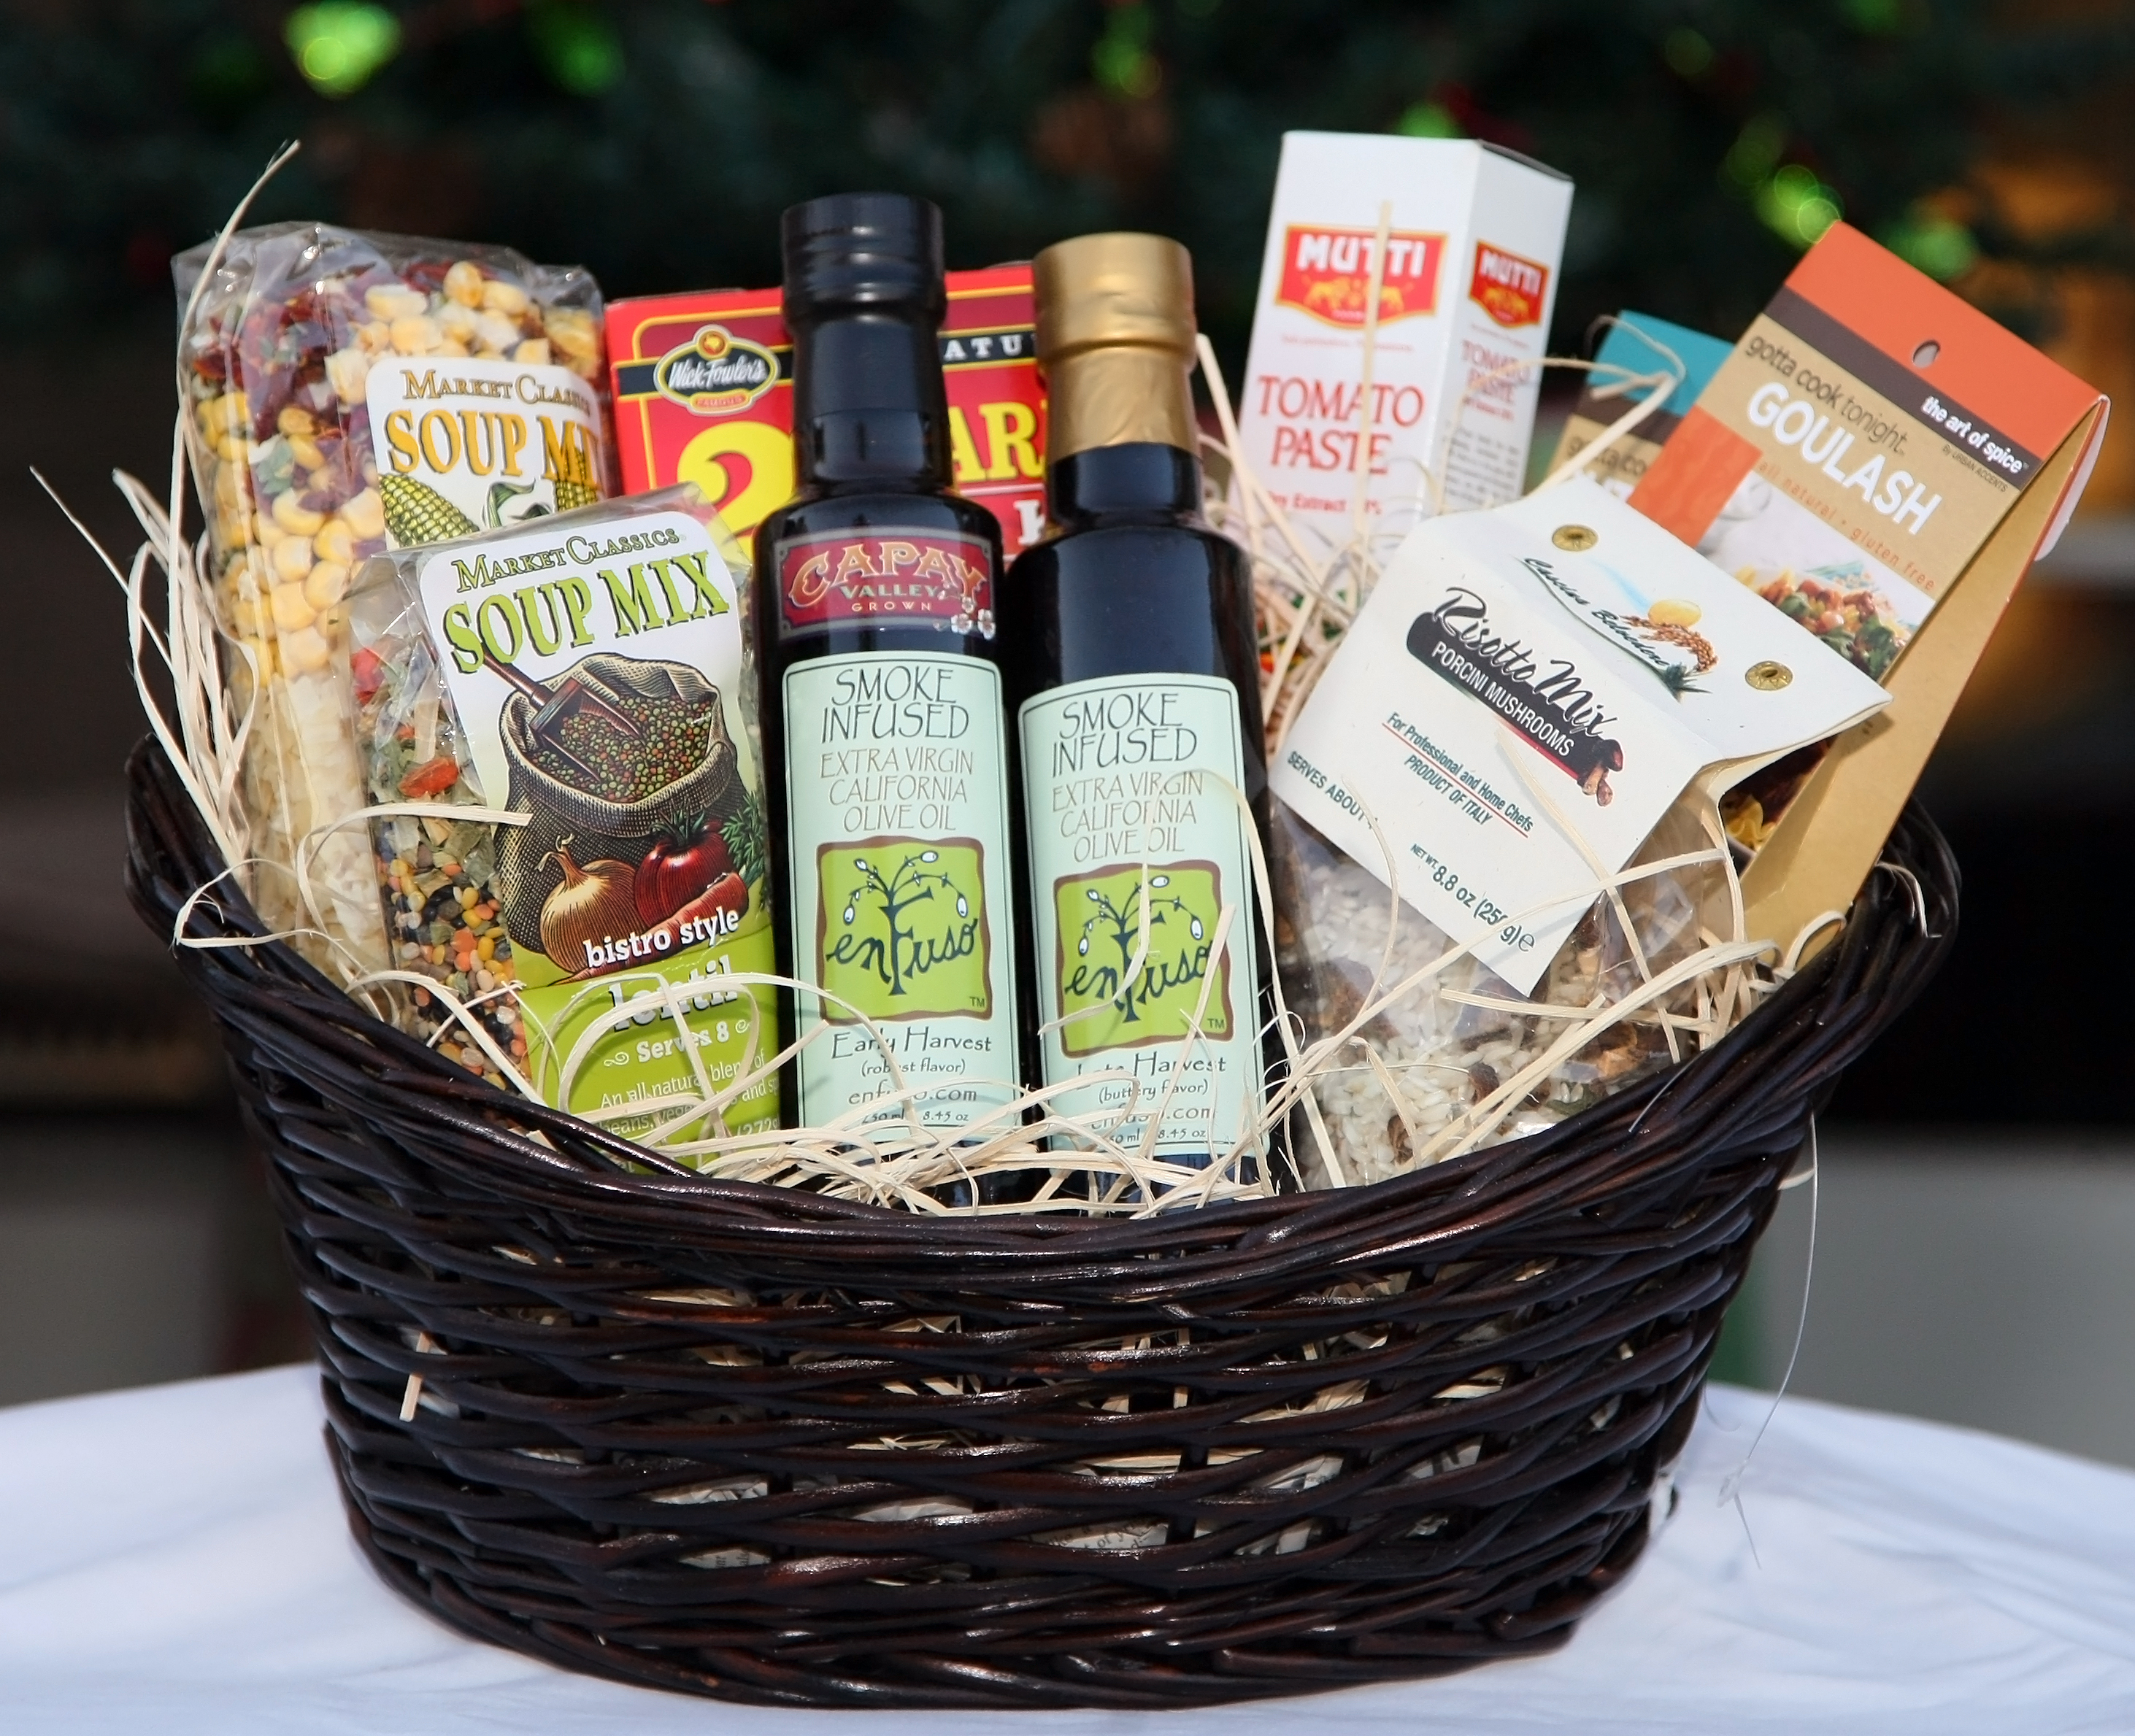 Kitchen Present Enfuso Smoked Olive Oil Gift Basket Giveaway Texas Kitchen And